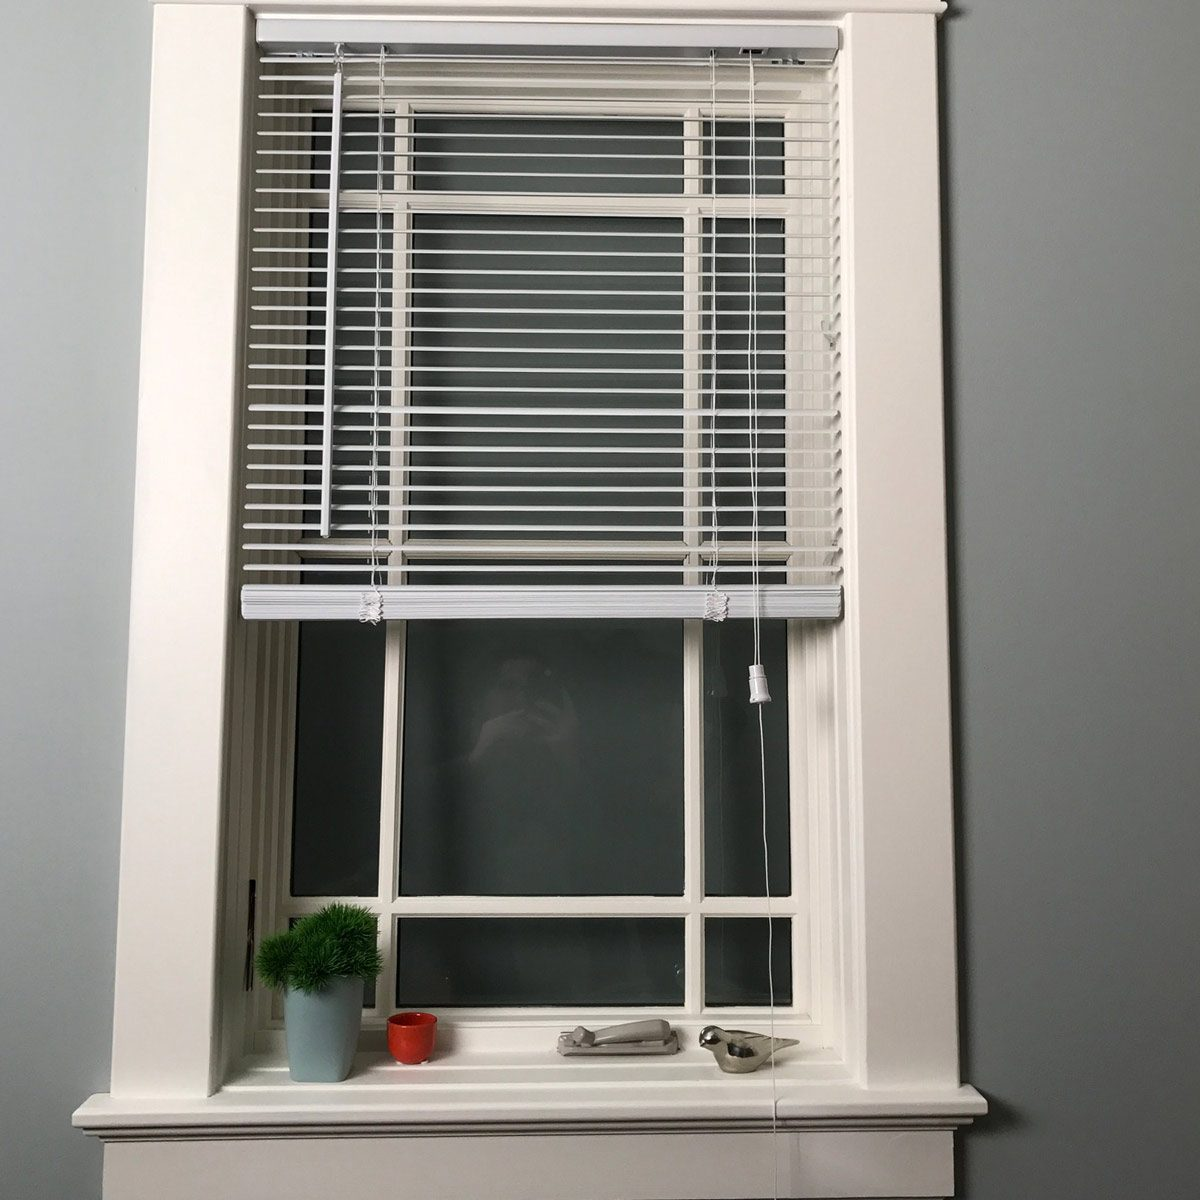 Worst: Window Replacement